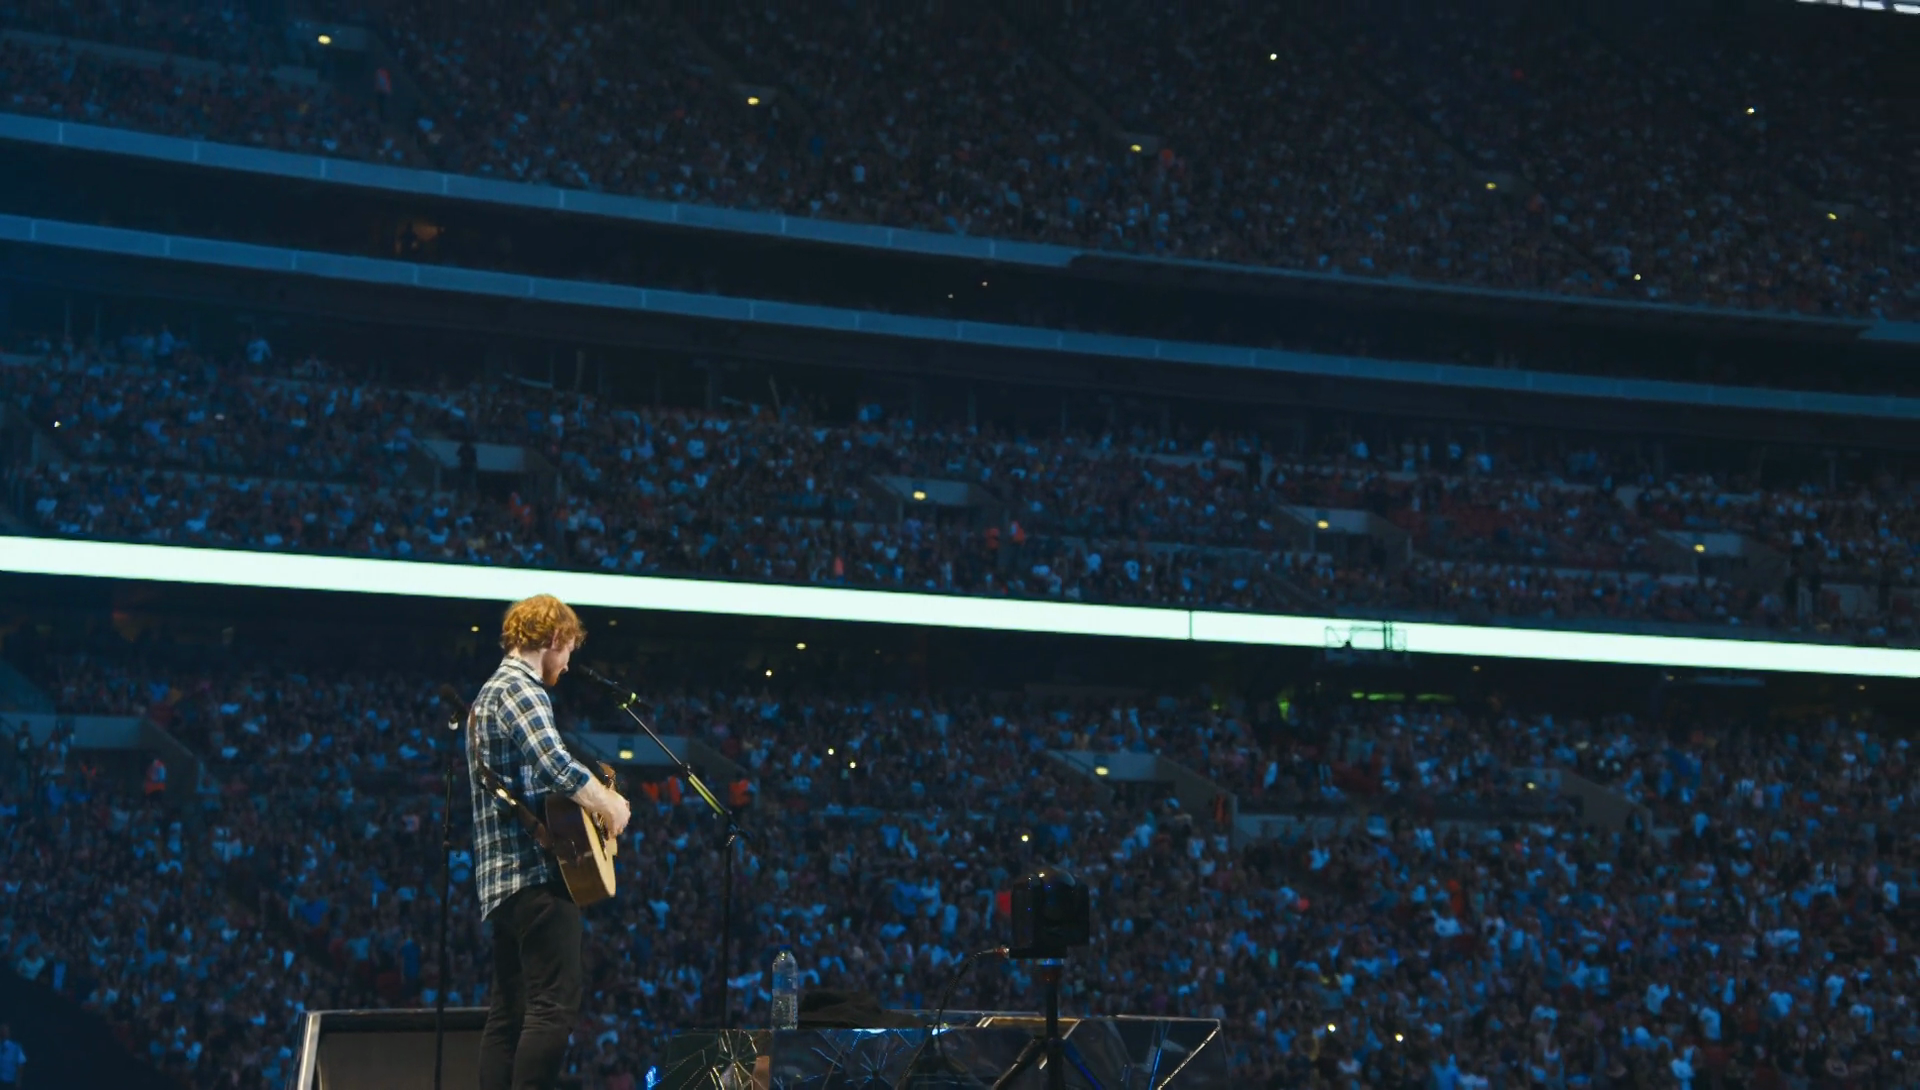 Ed-Sheeran-Concert-1920x1080-See-more-on-Classy-Bro-wallpaper-wp3805024